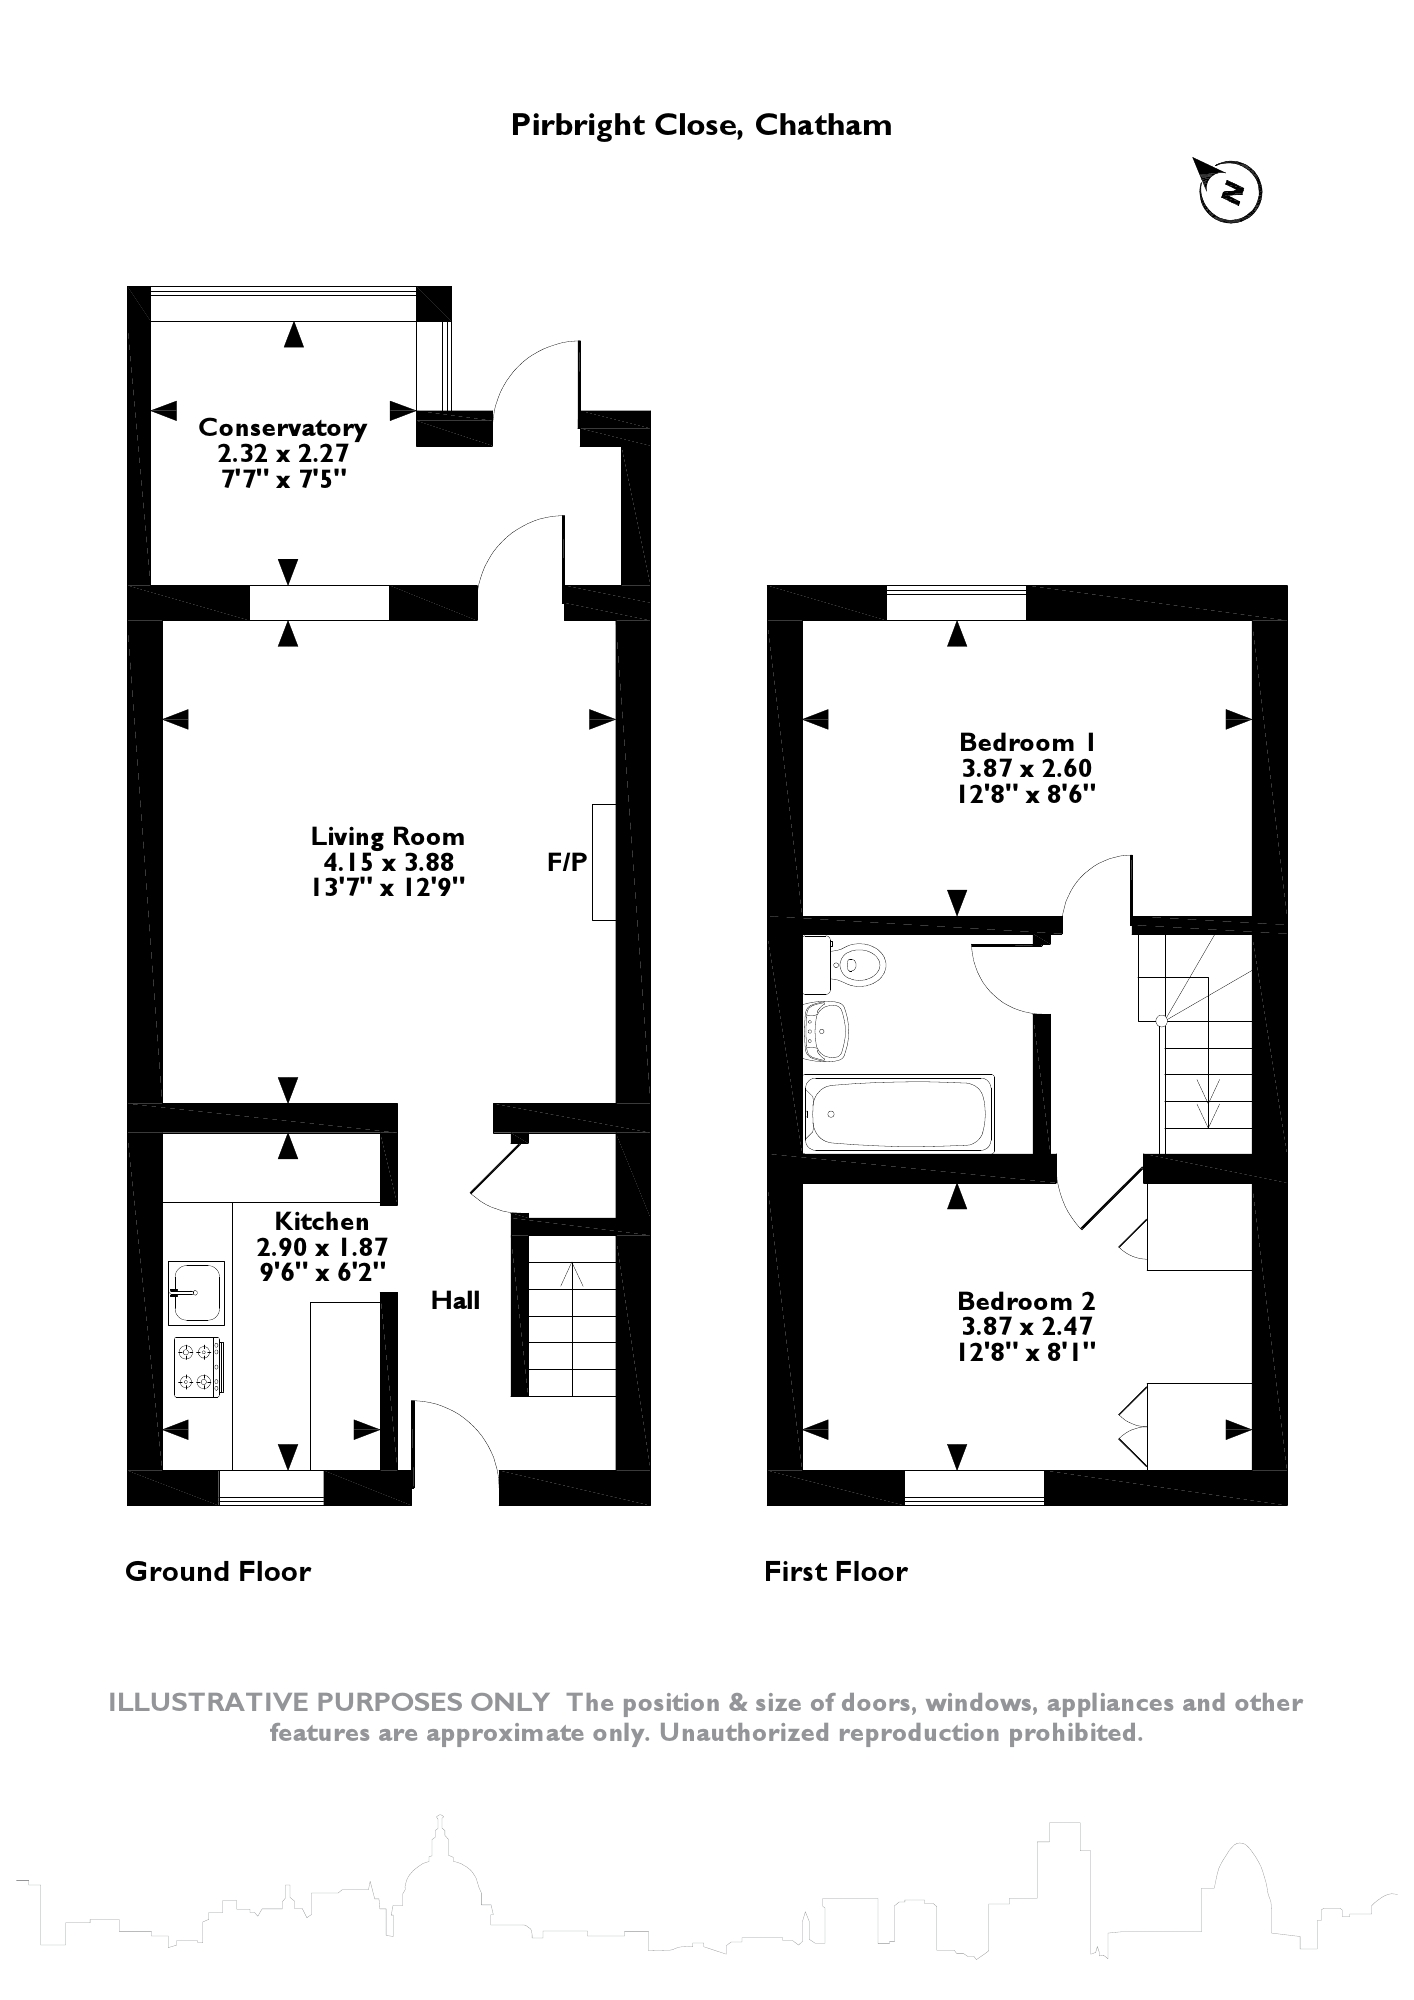 Pirbright Close, Chatham, ME5 floor plan